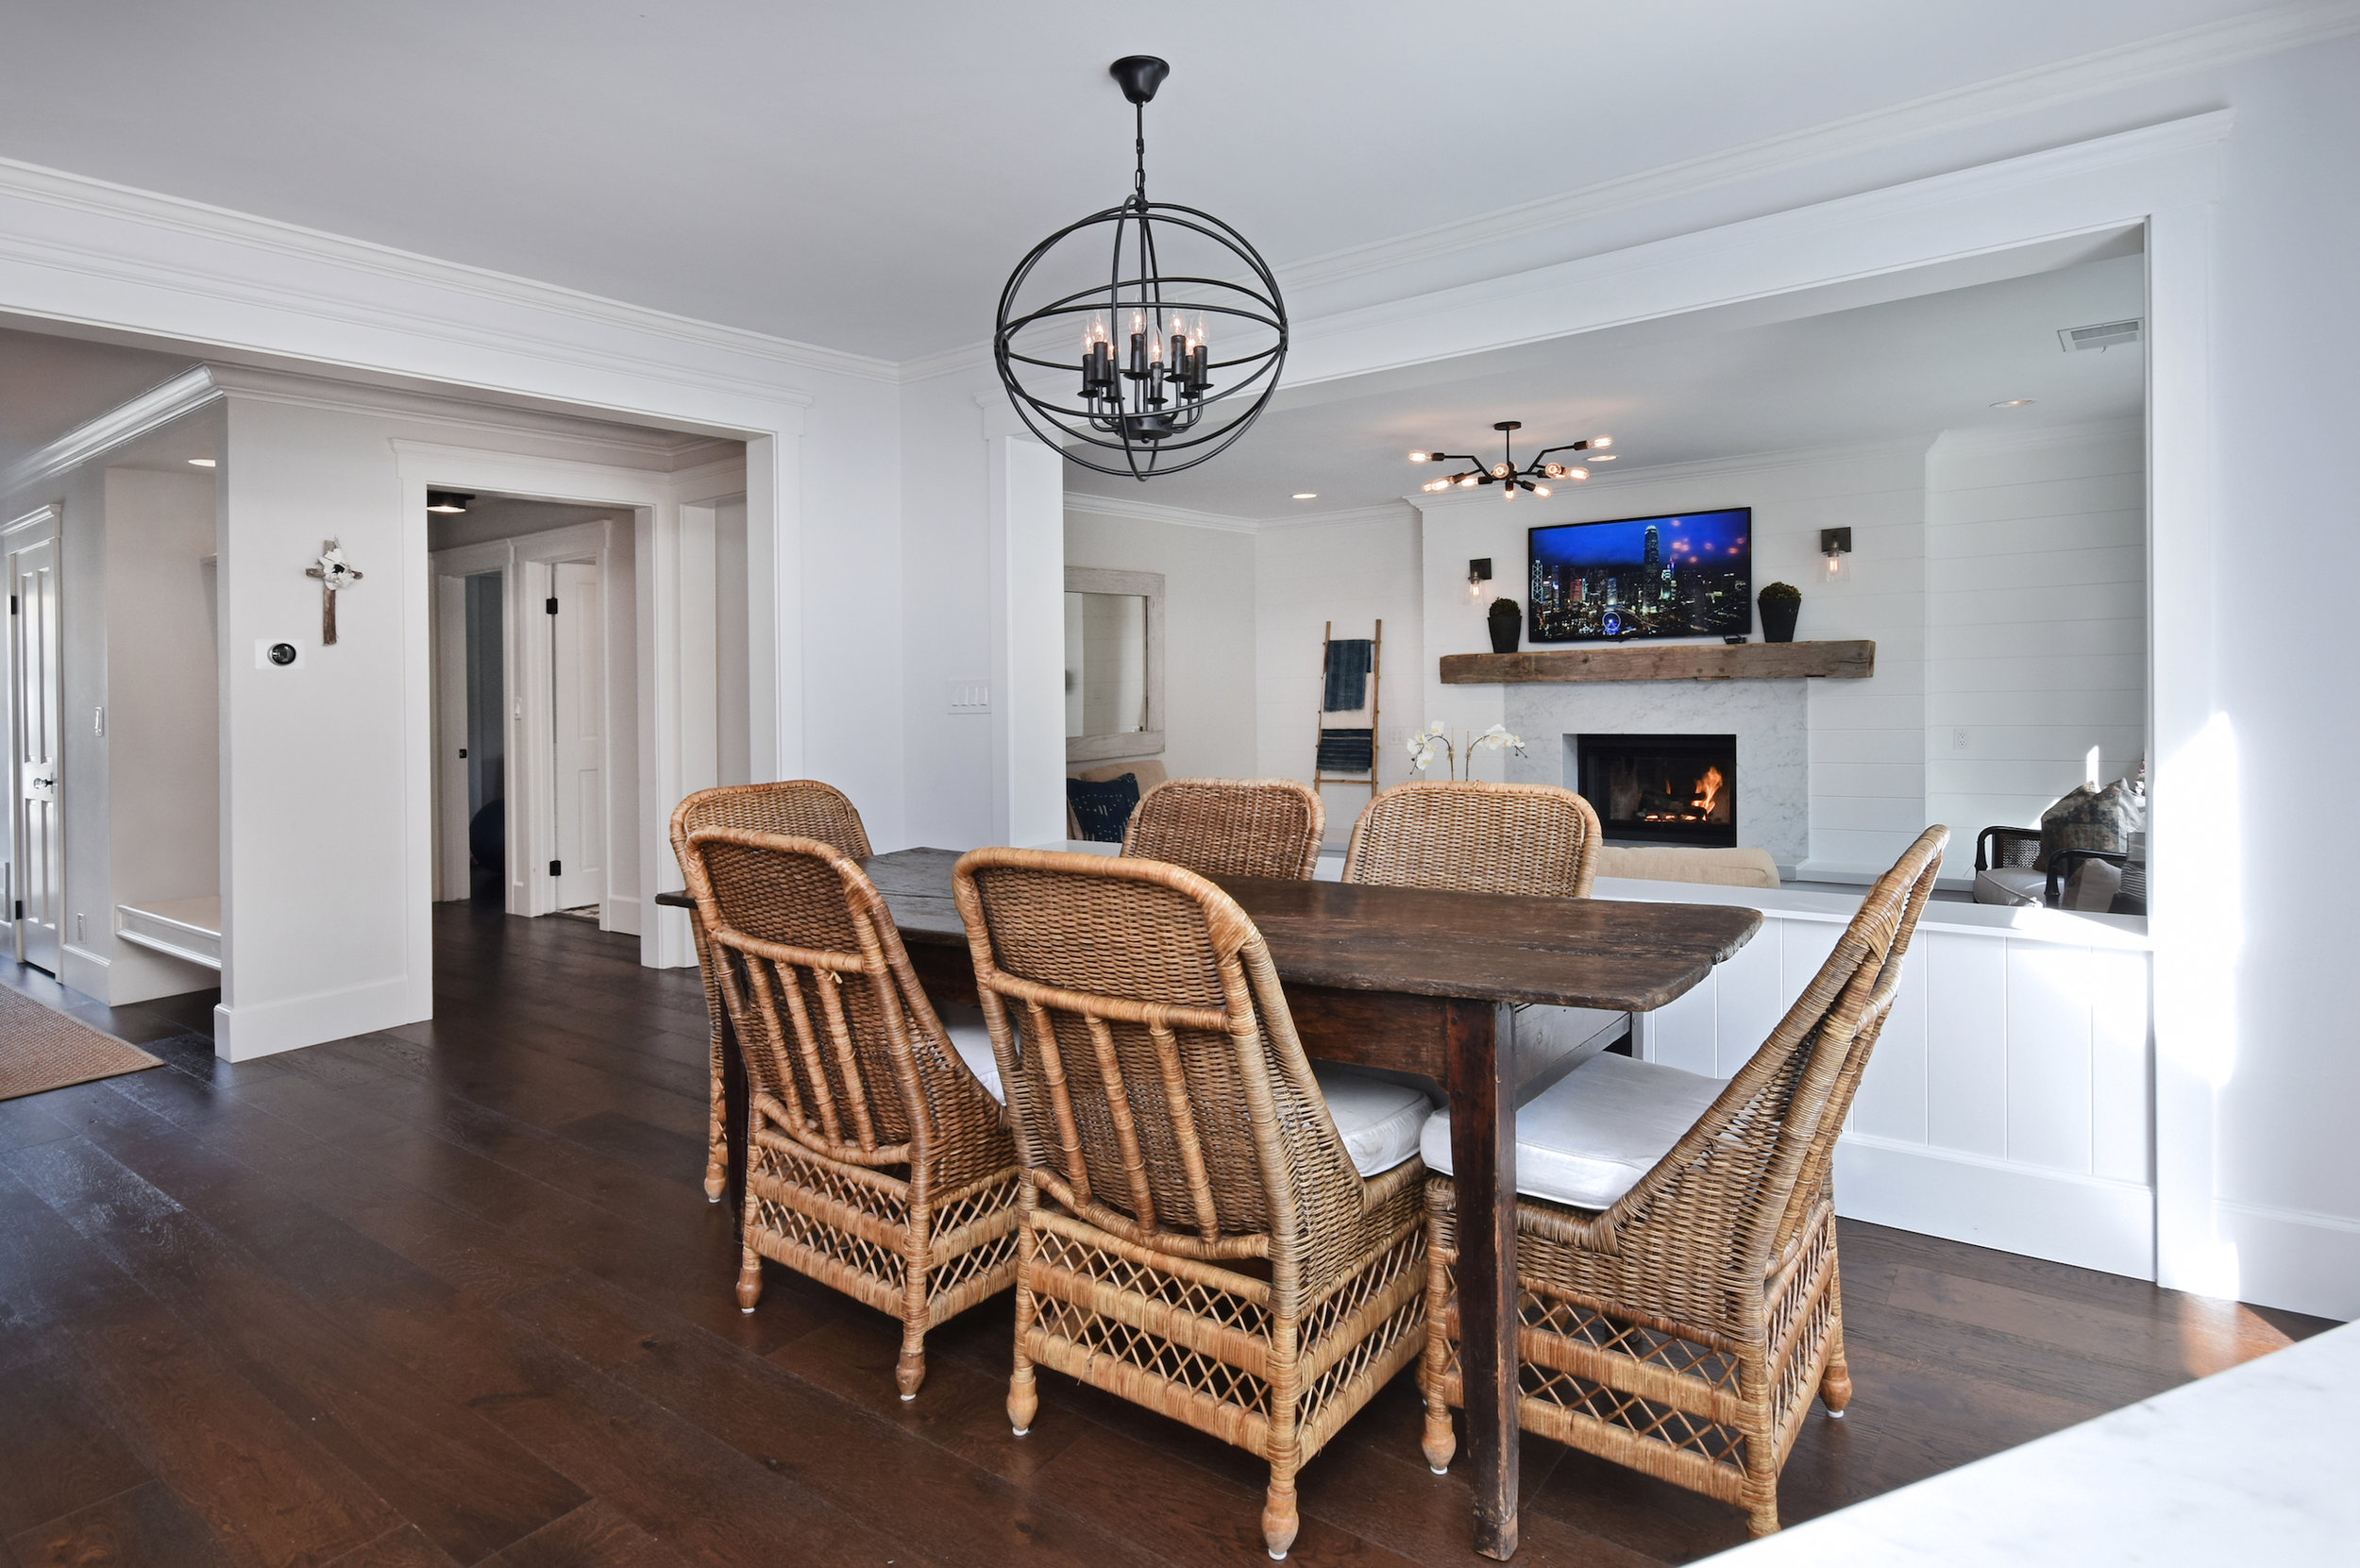 017 Dining Room 560 Cold Canyon Road For Sale Lease The Malibu Life Team Luxury Real Estate.jpg